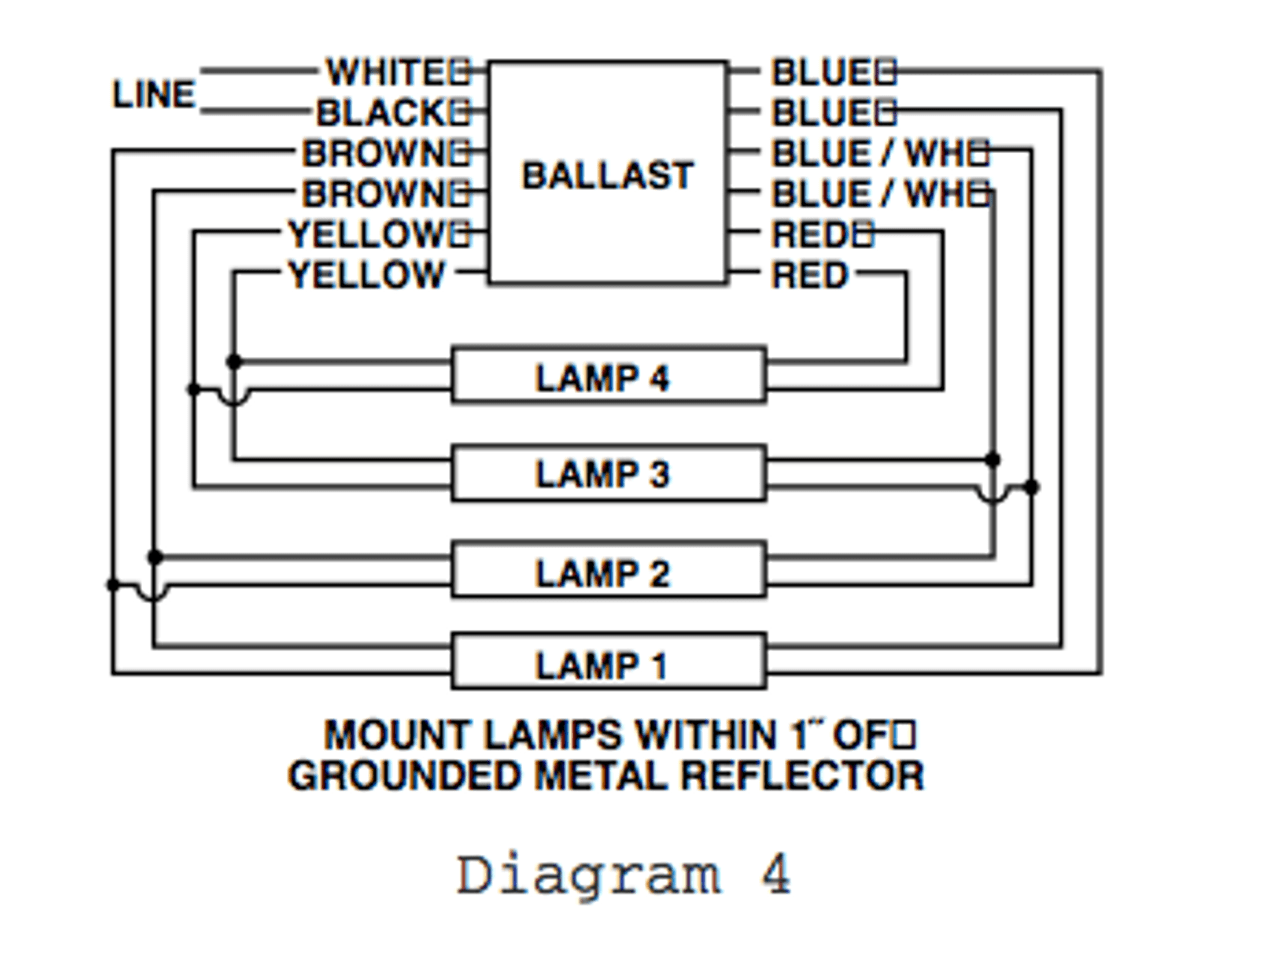 hight resolution of universal signa 256 496 800 t12 magnetic sign ballast256 496 800 signa wire diagram